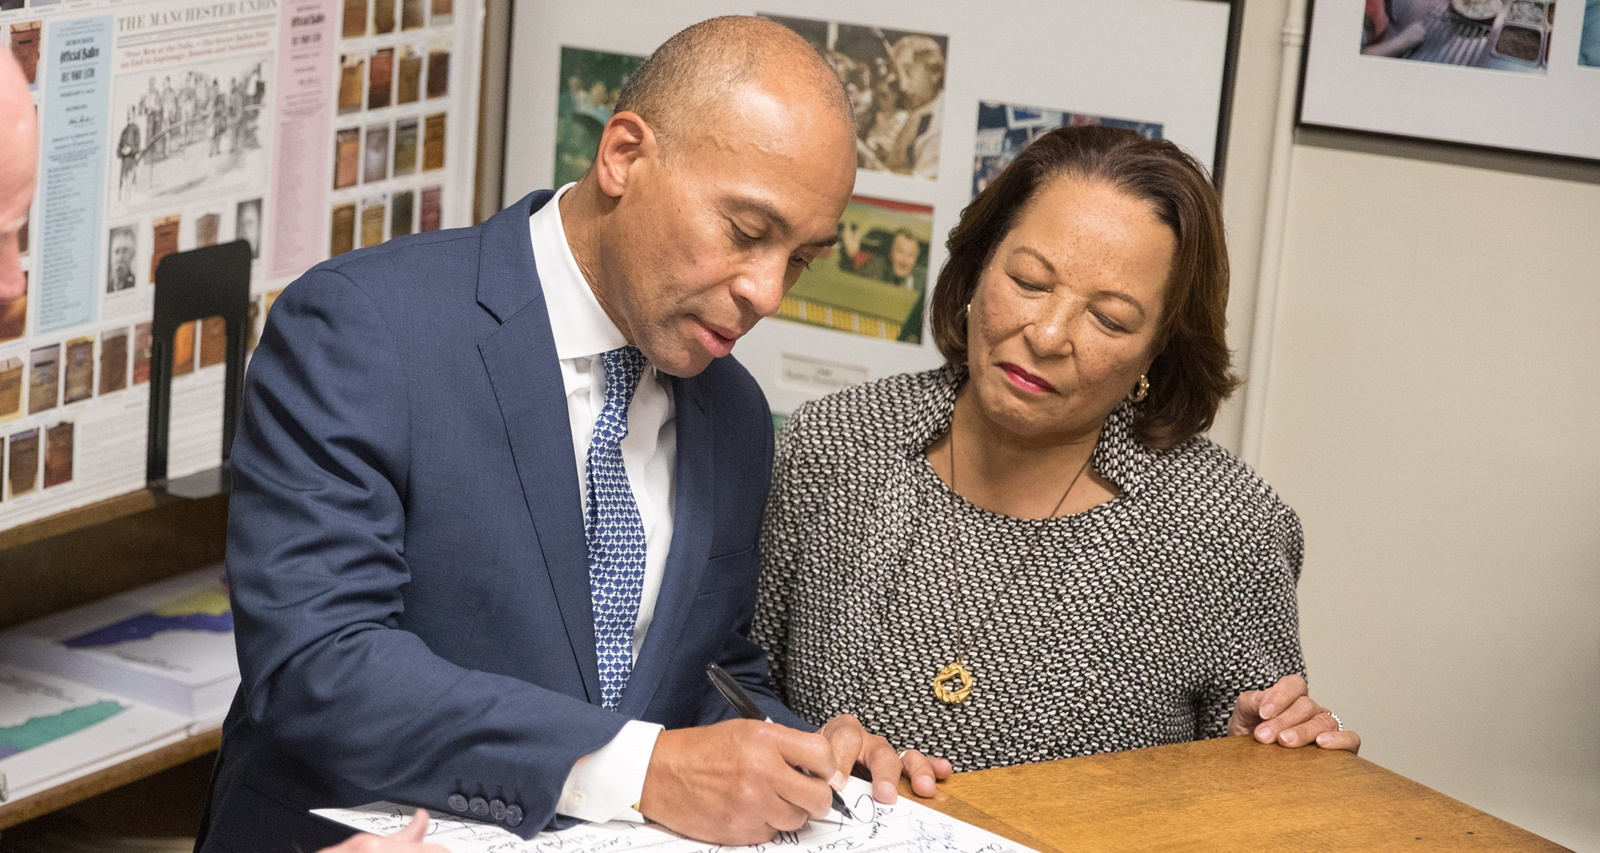 Deval Patrick Wife: Diane Patrick Wiki, Age, Family, Early Life and Facts To Know